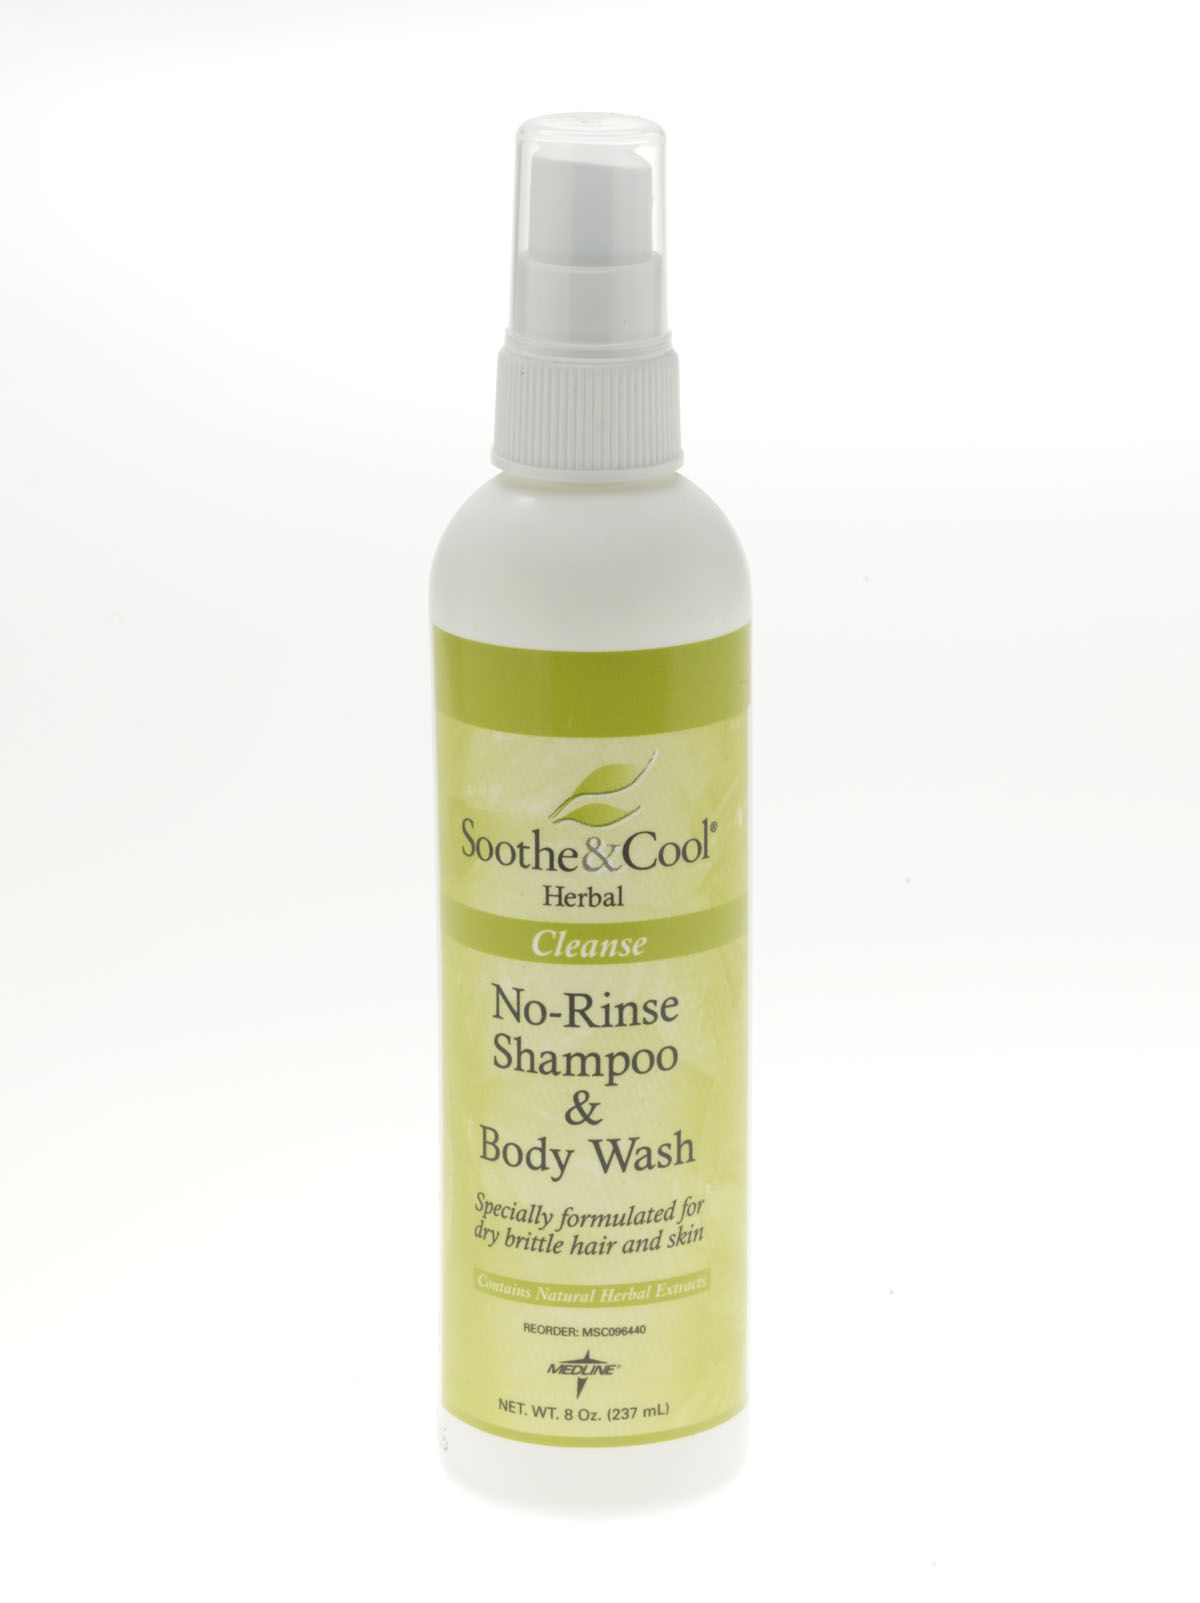 Soothe & Cool Herbal Shampoo & Body Wash - S&C Herbal, N/R, 8 Oz., Box of 12 - Model MSC096440